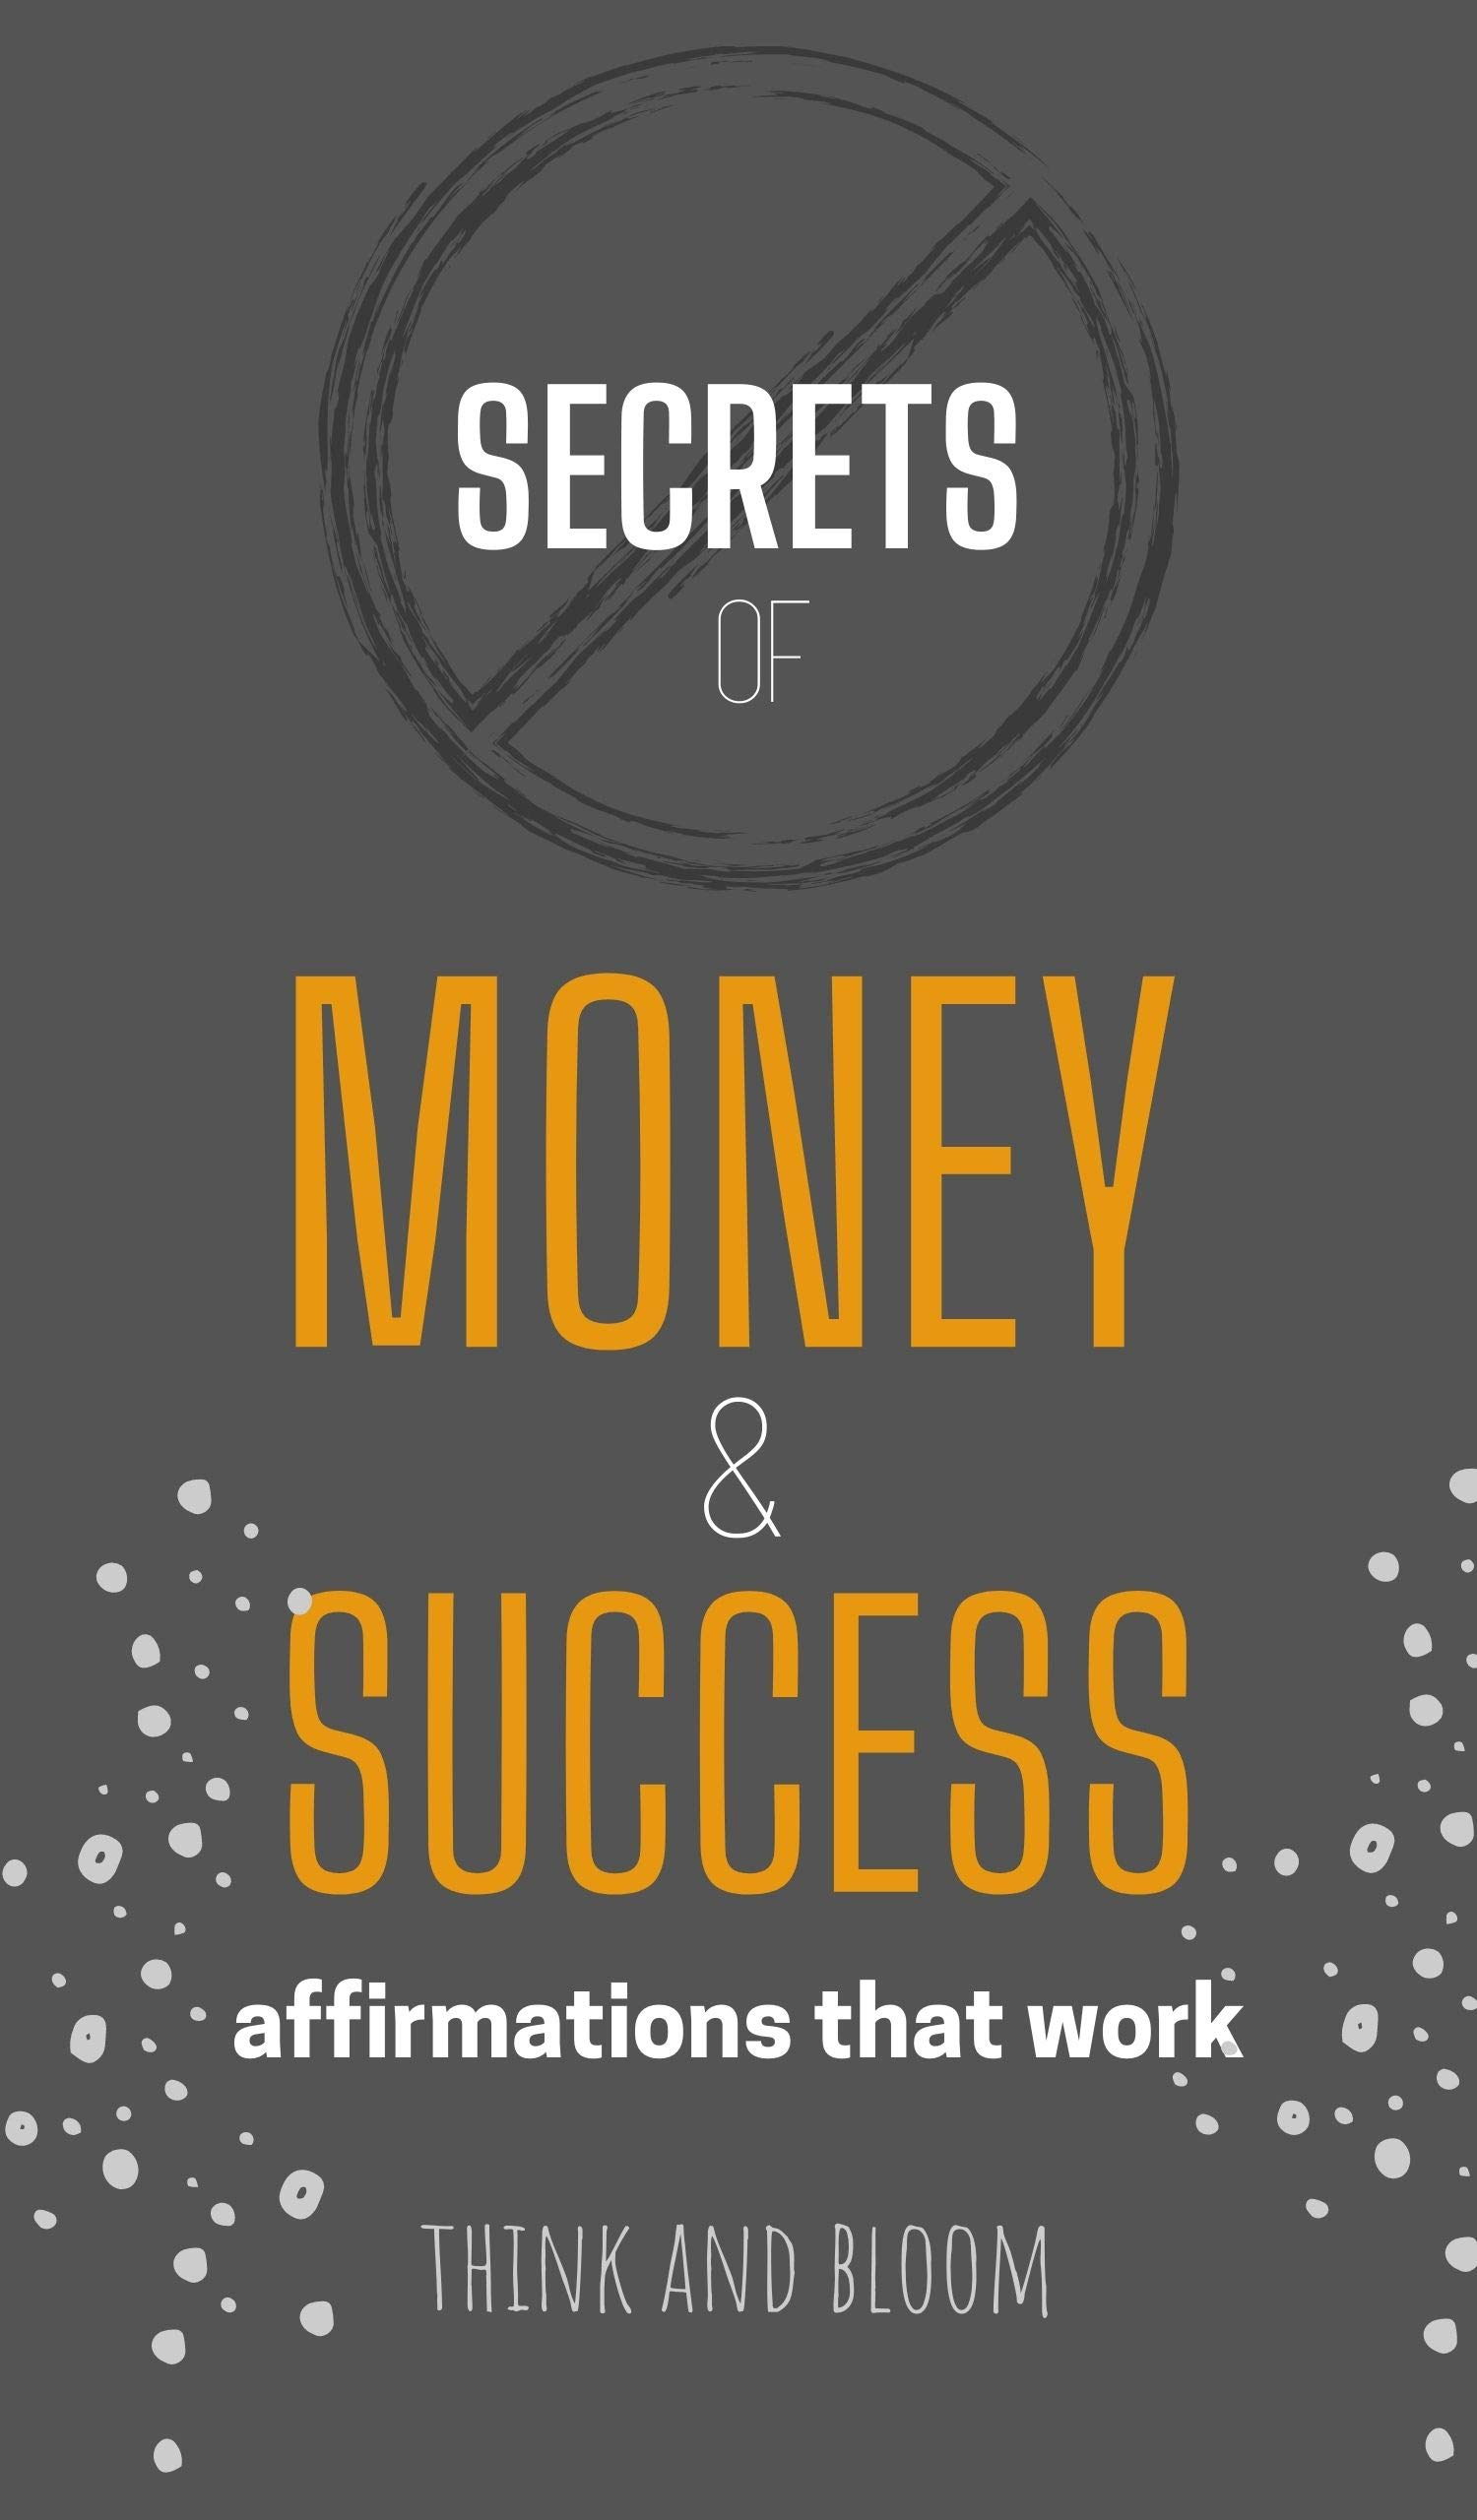 Secrets of money and success : Affirmations that work, The law of attraction